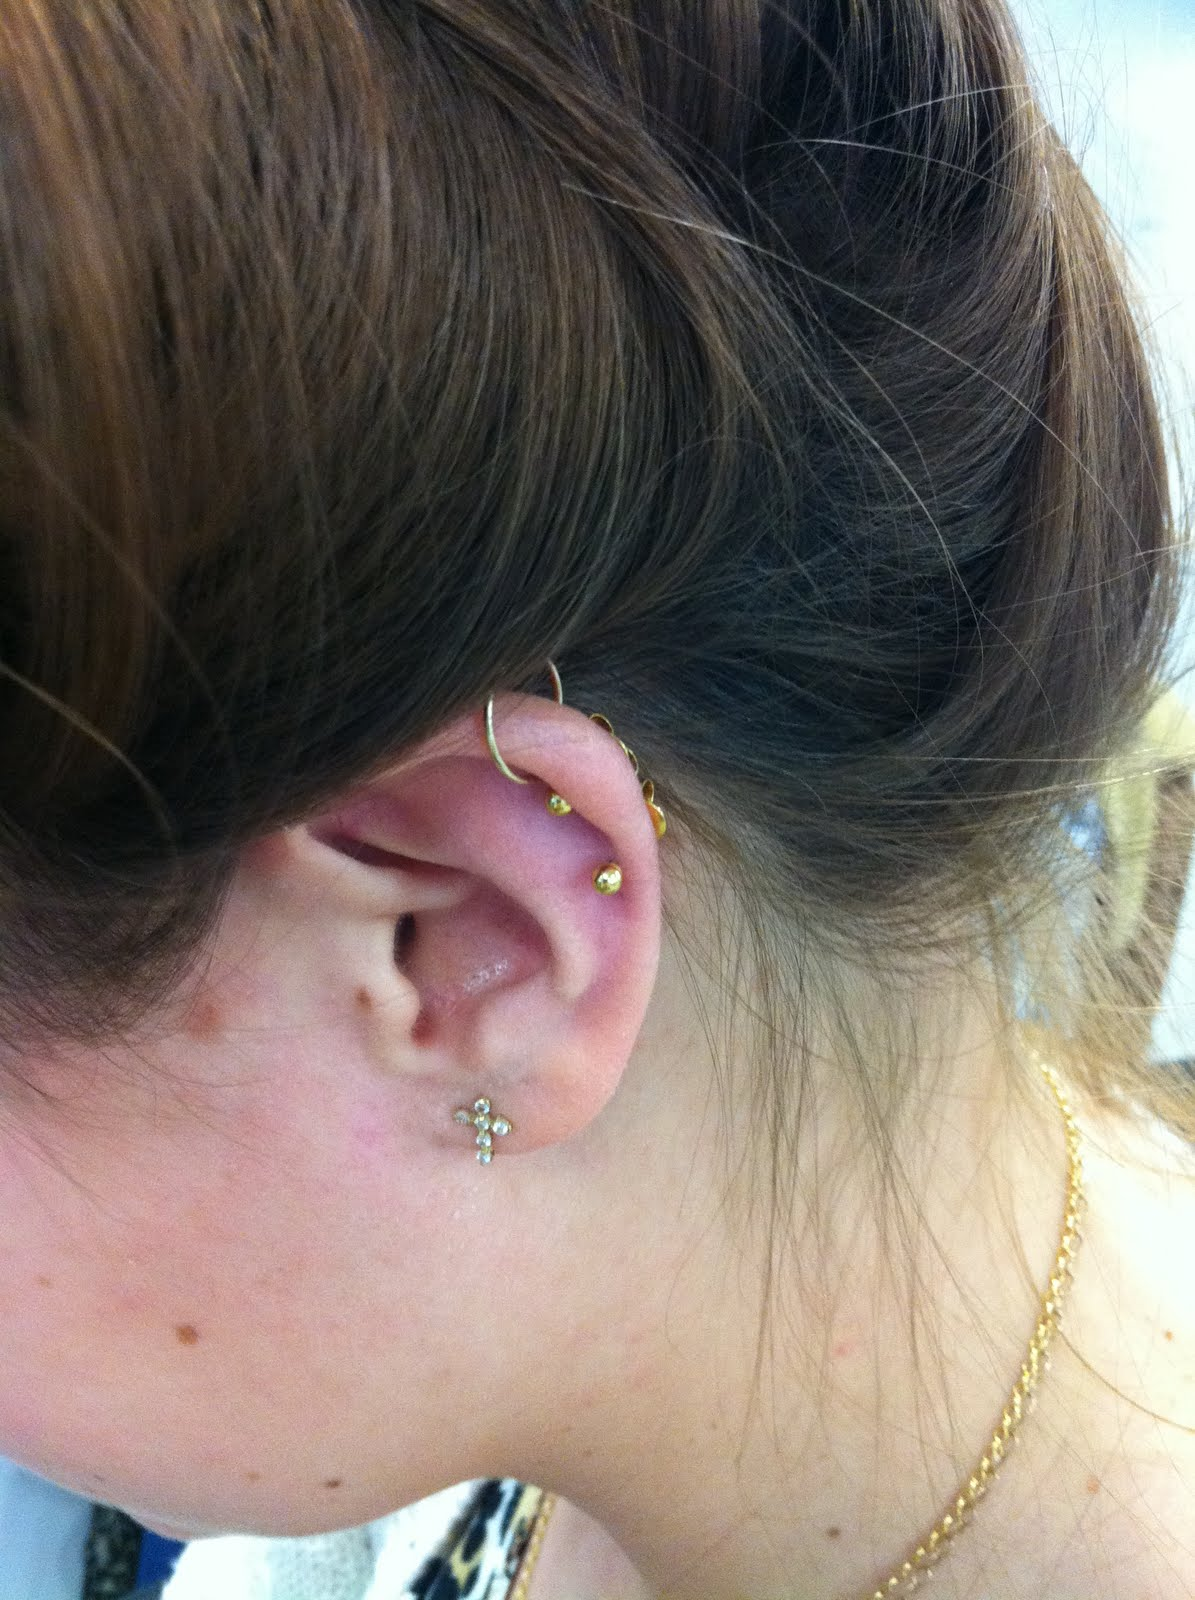 Fashion Editor : Ear Piercing At Claire's